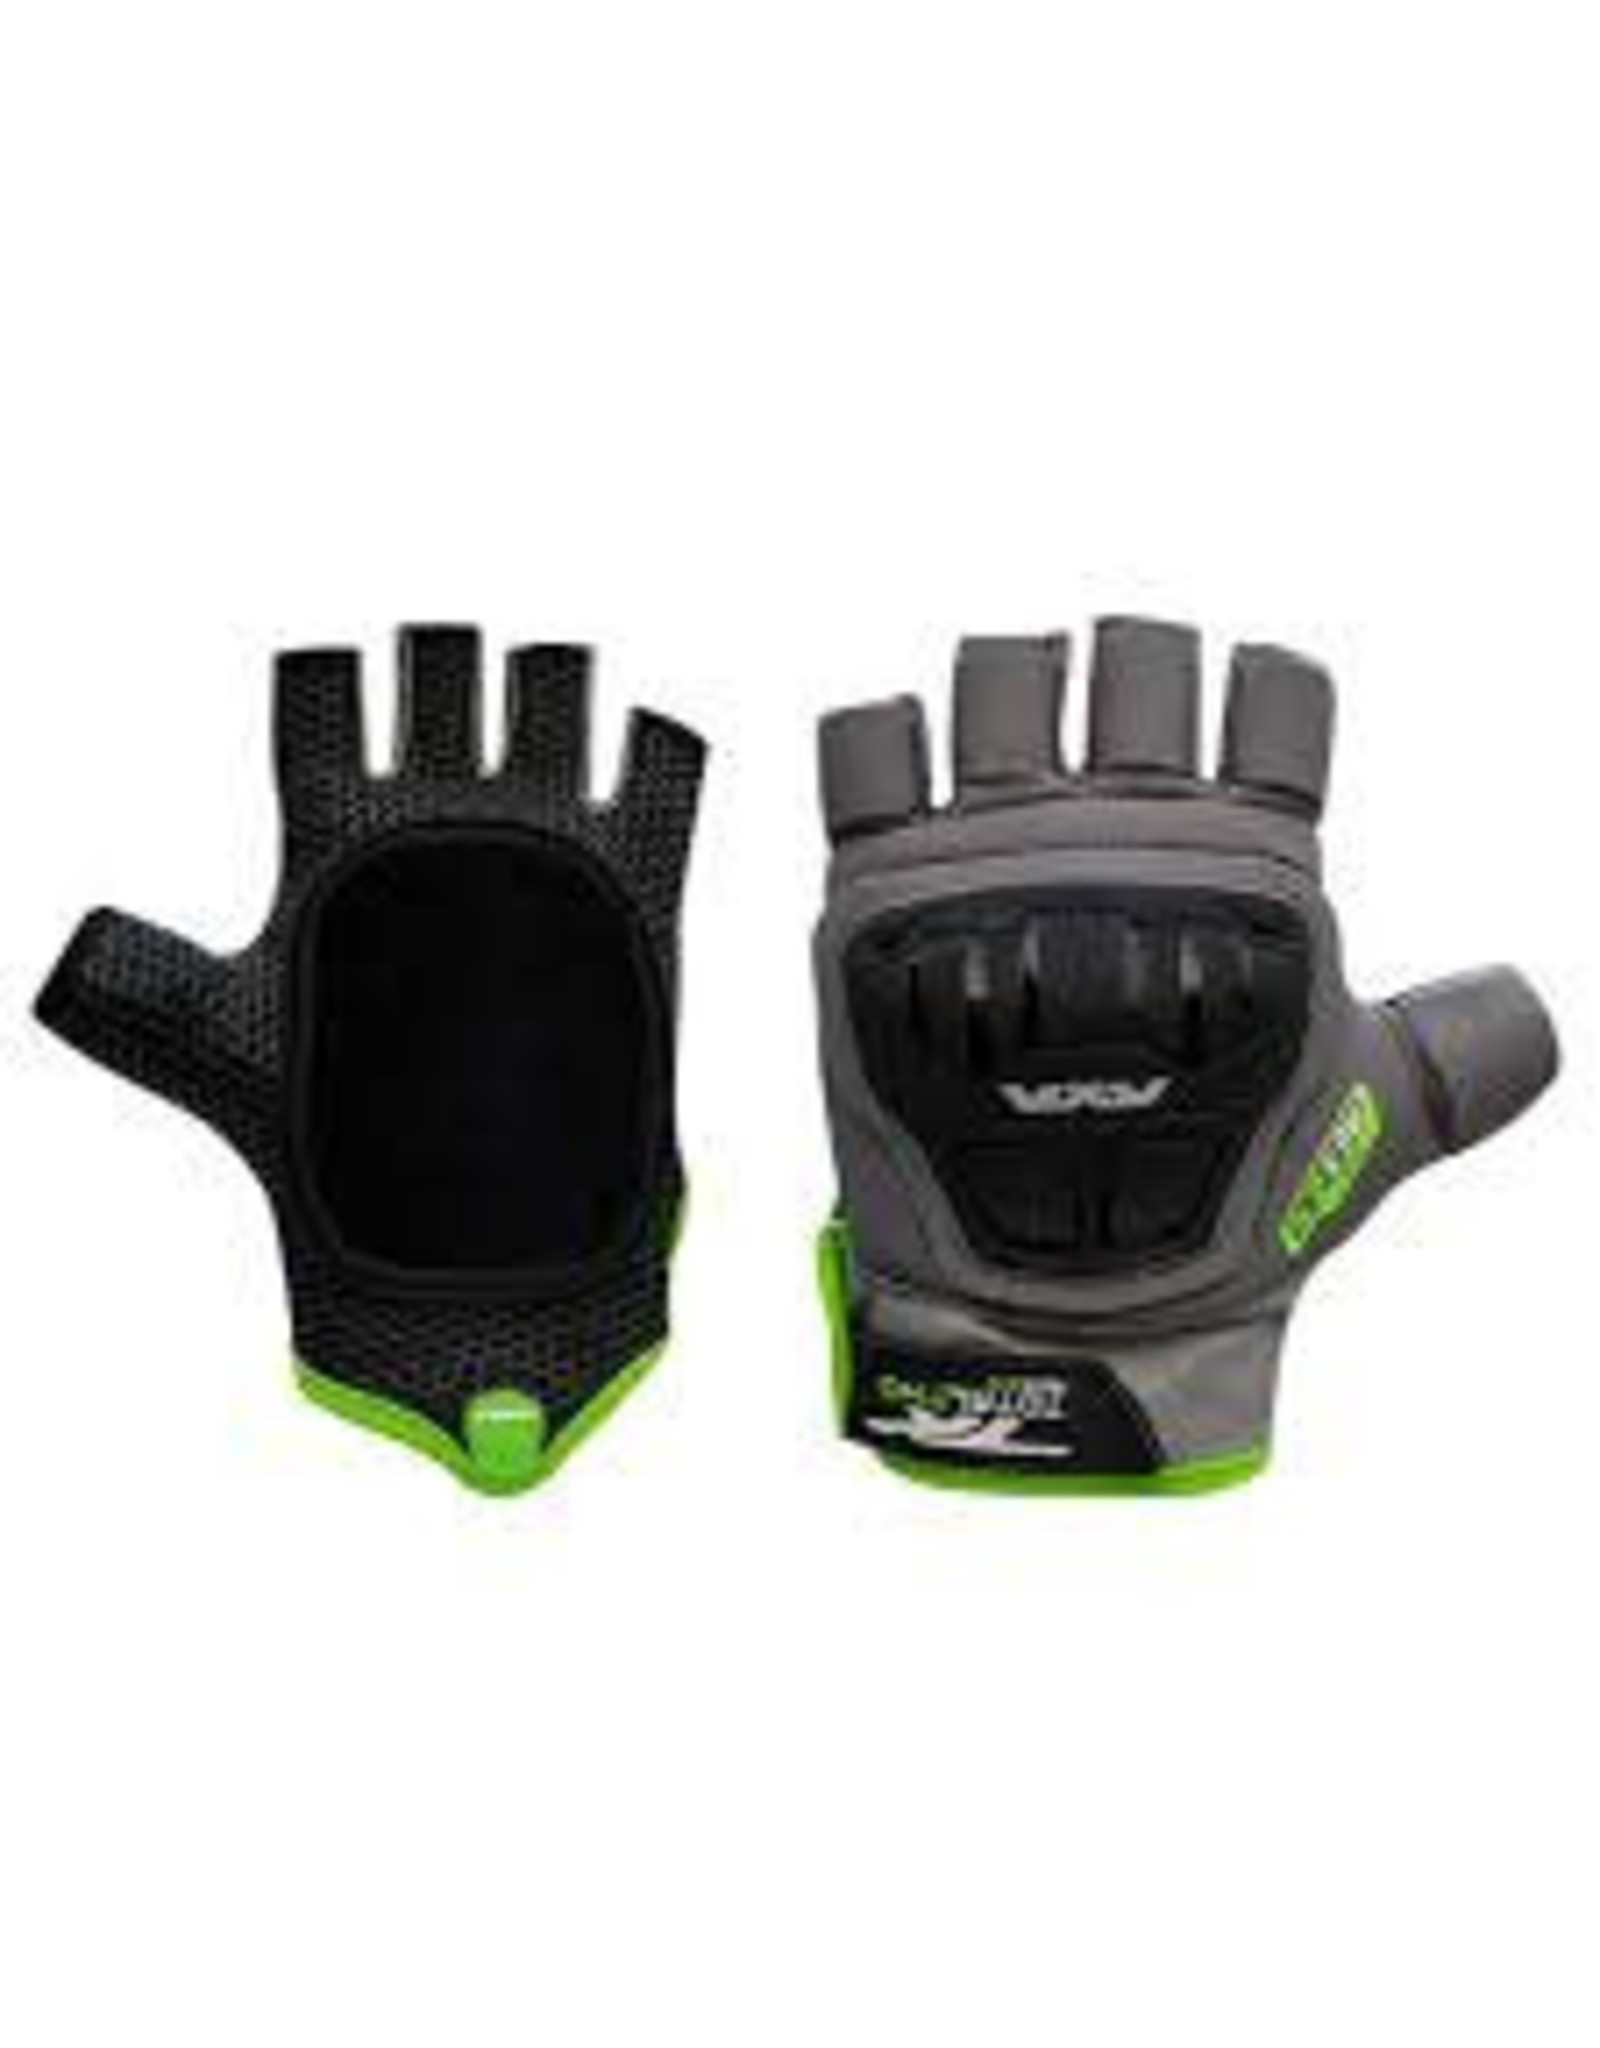 TK TK TOTAL TWO 2.4 GLOVE OPEN M